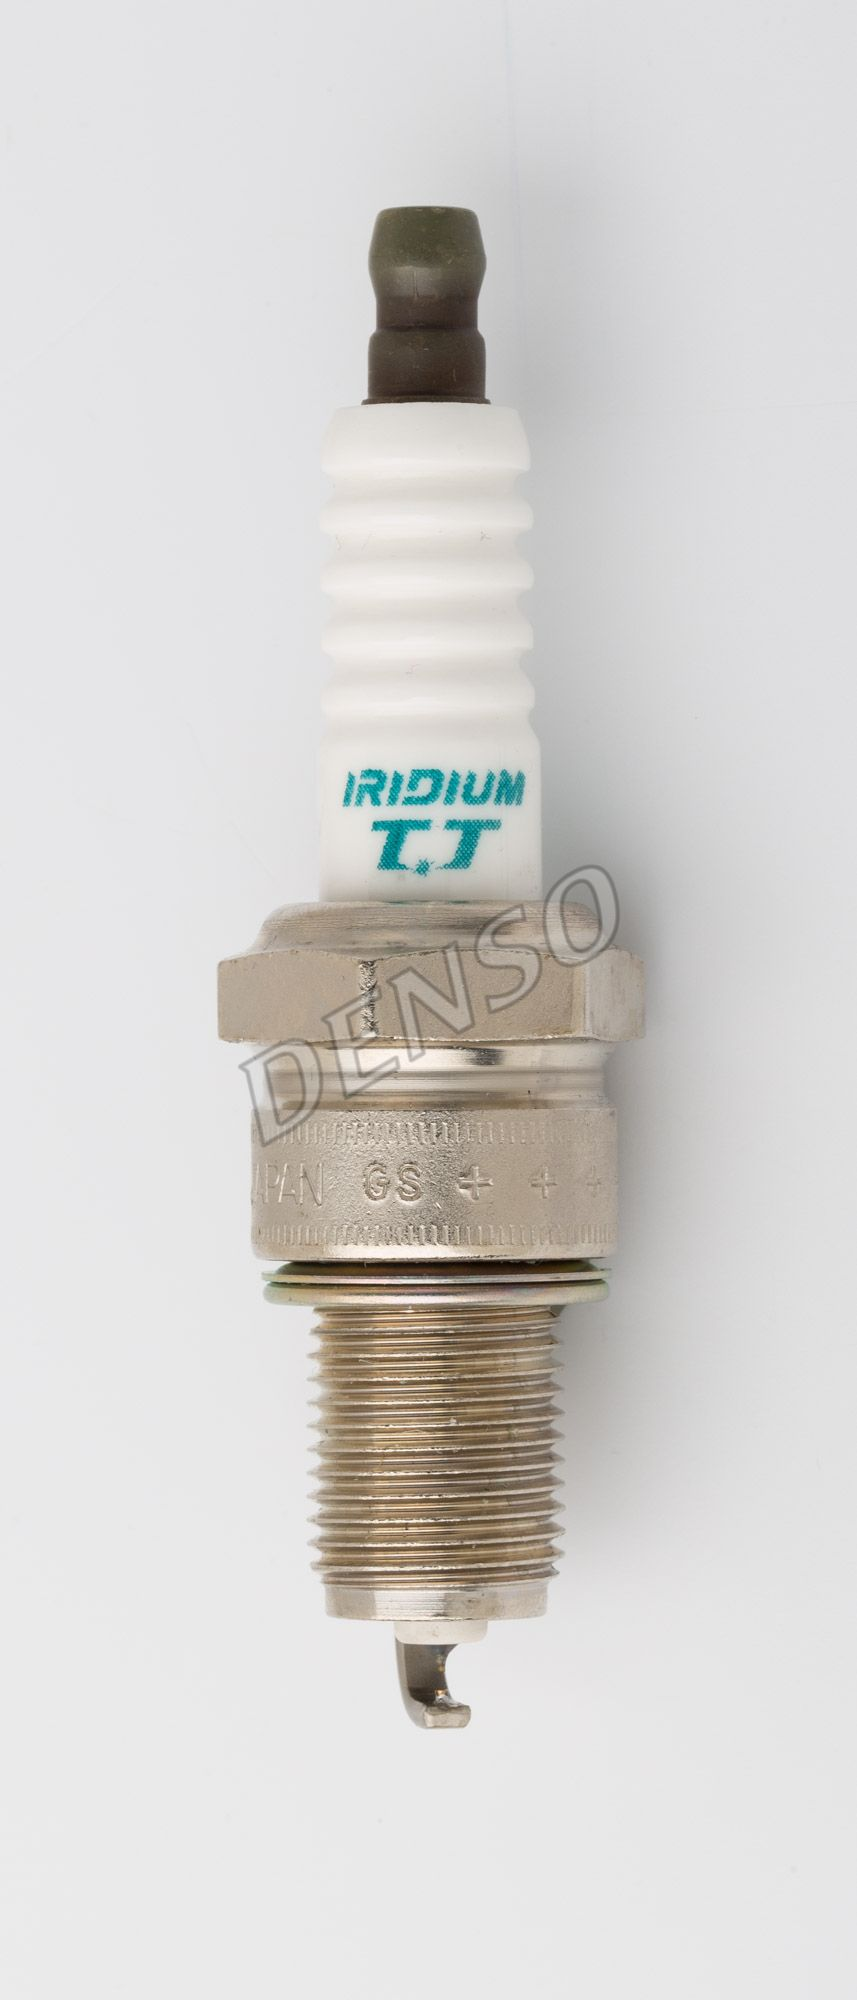 Spark Plug IW20TT from DENSO